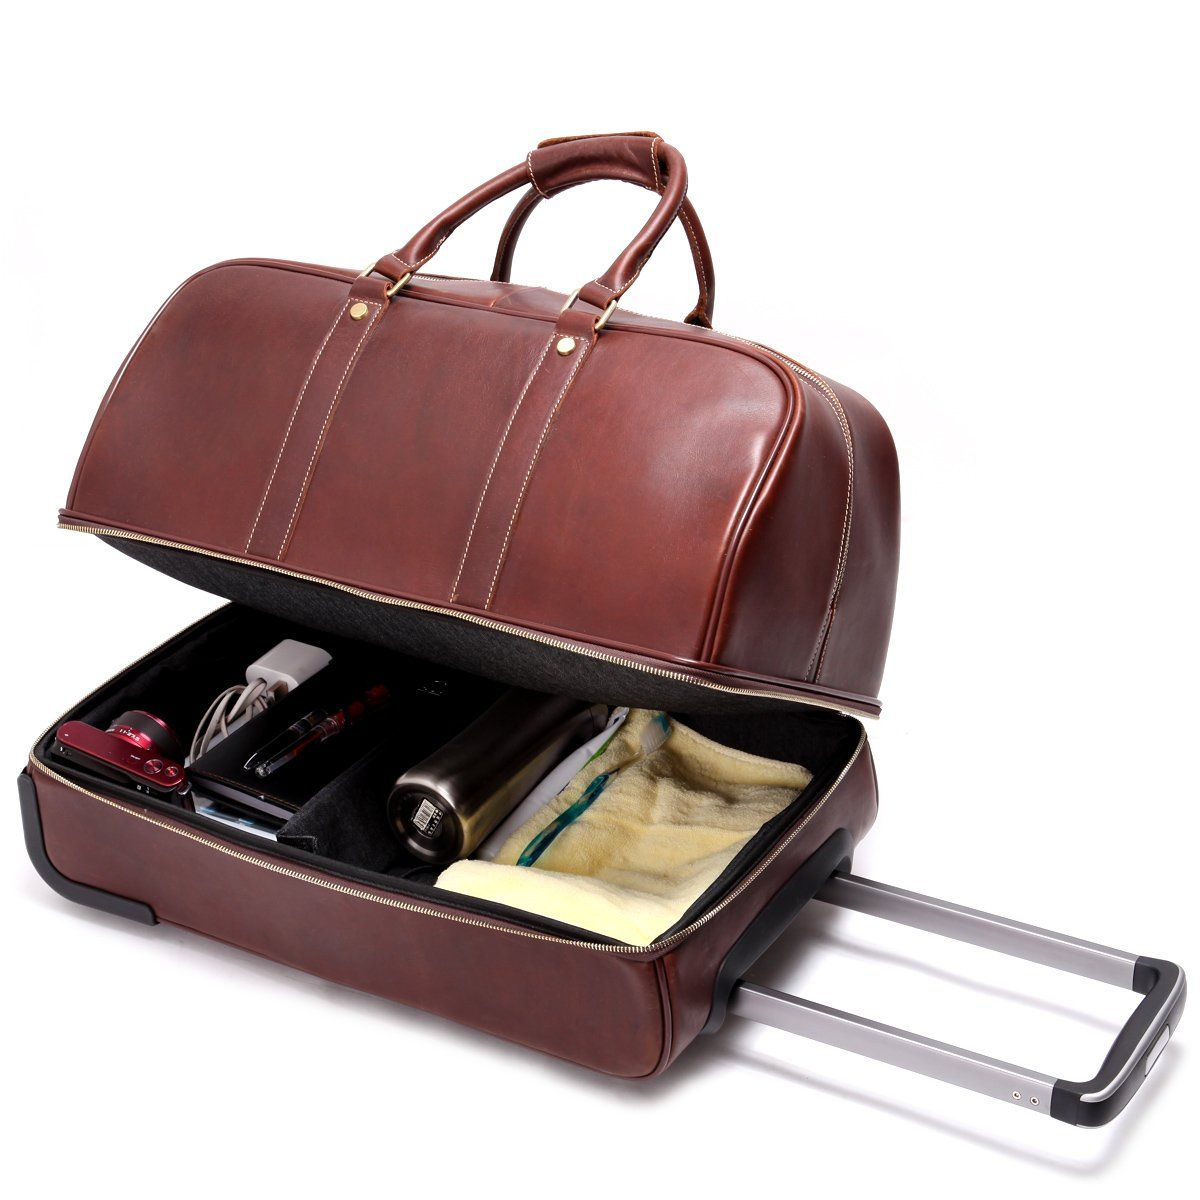 Leathario Men's Leather Luggage Wheeled Duffle, Leather Travel Bag ...